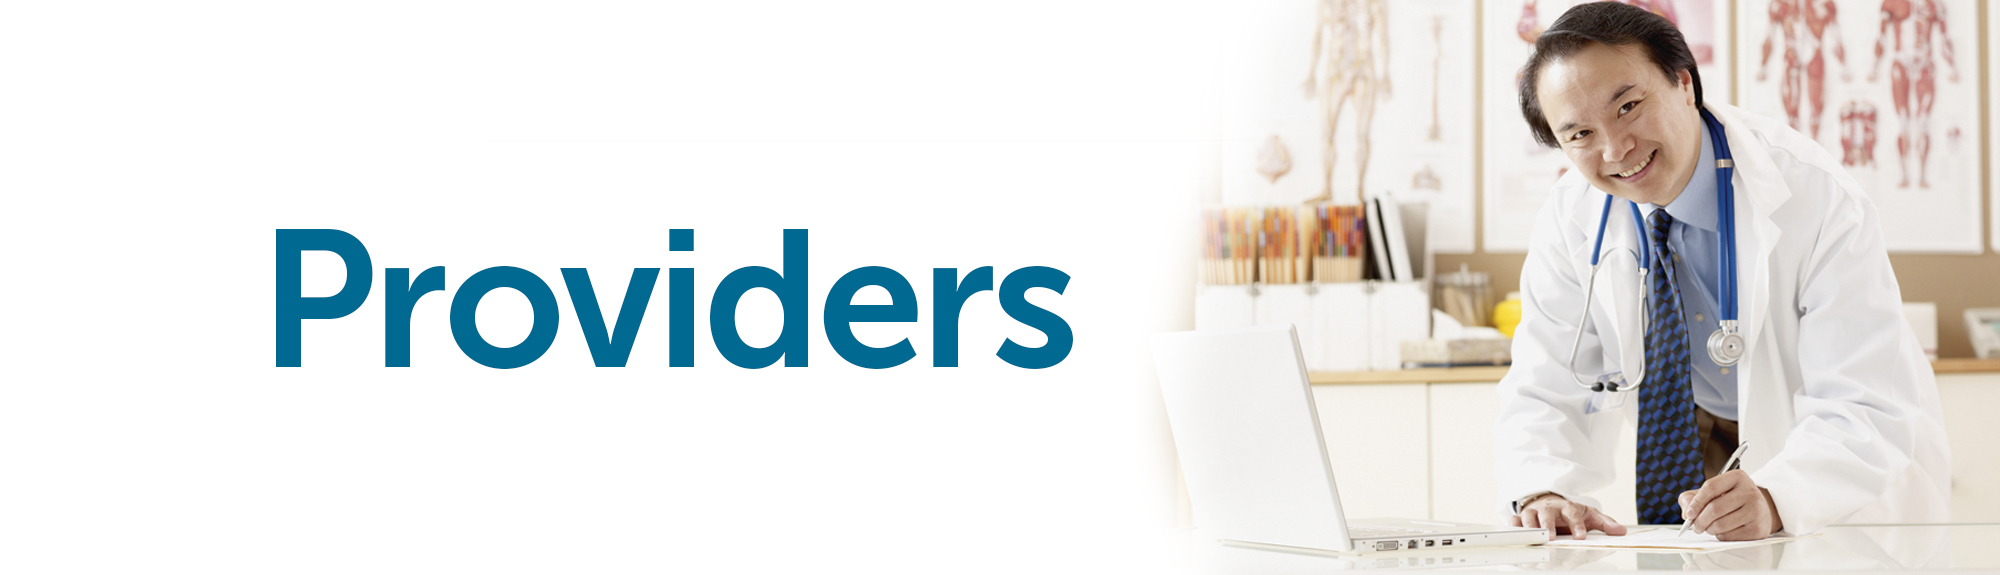 Providers Banner